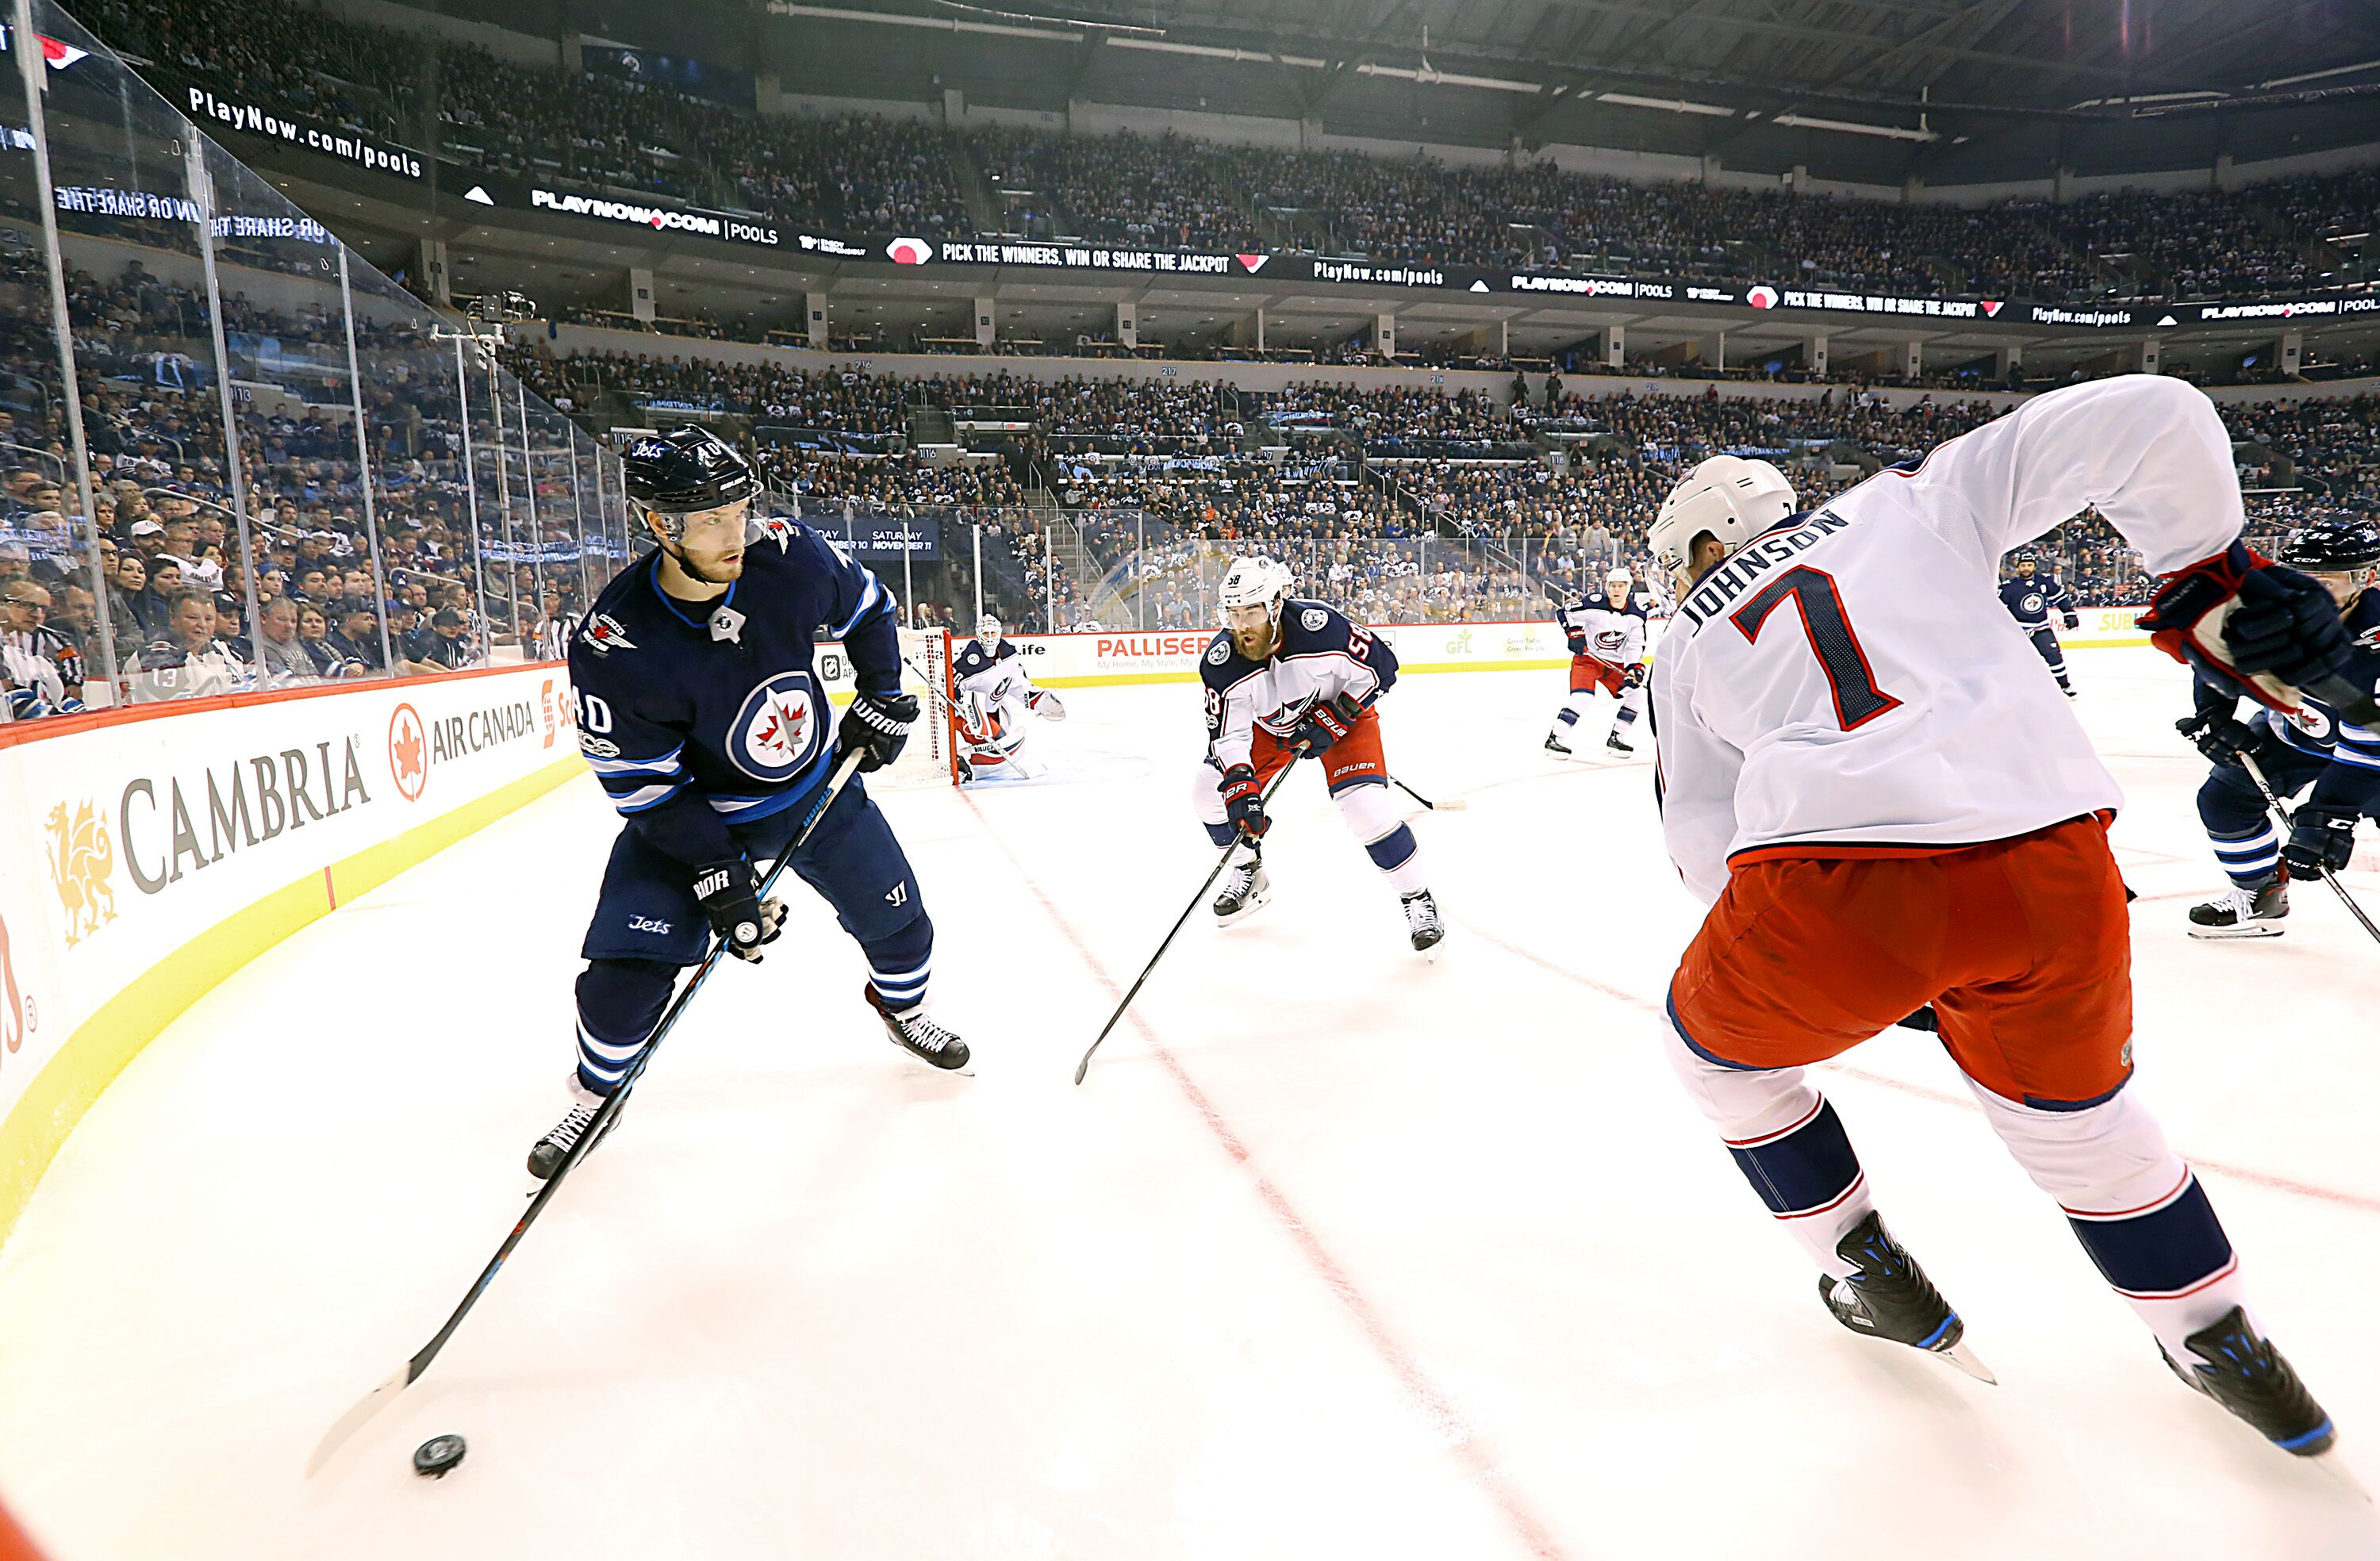 862573186-columbus-blue-jackets-v-winnipeg-jets.jpg